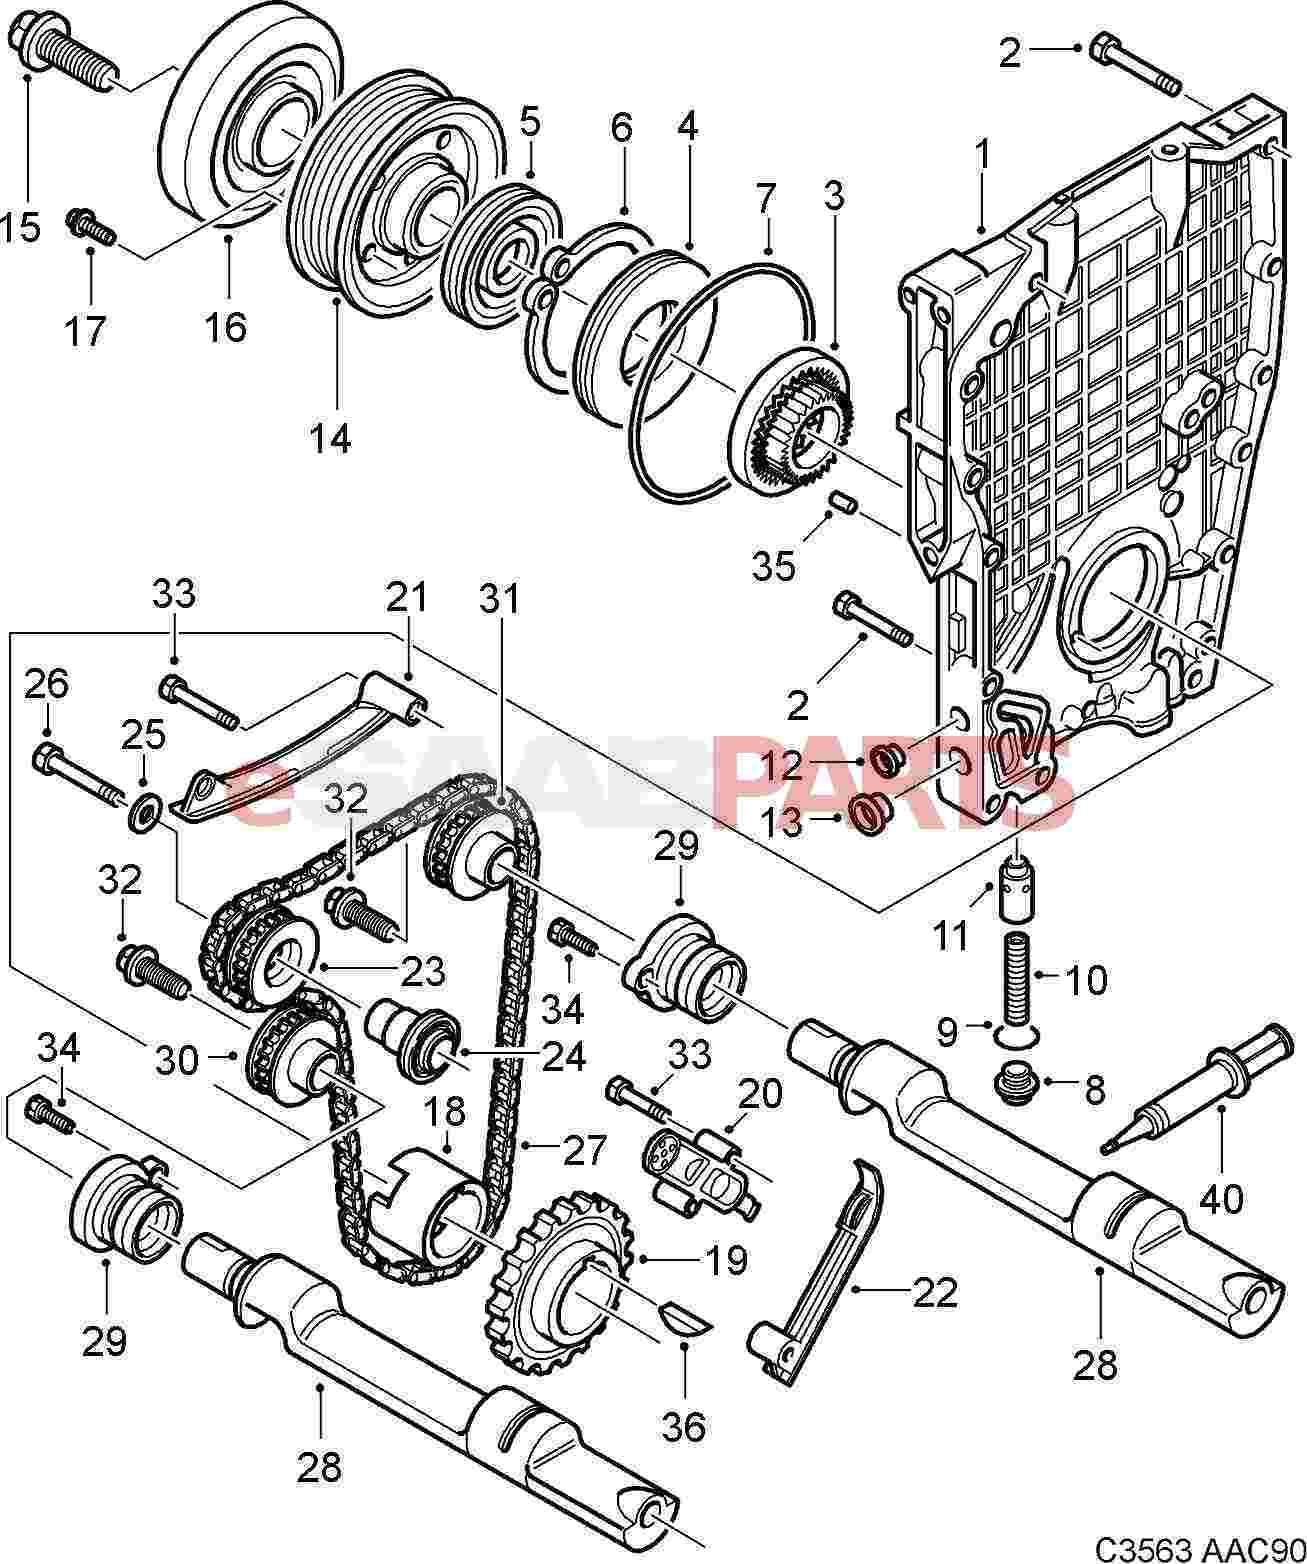 Saab 900 Se Engine Diagram